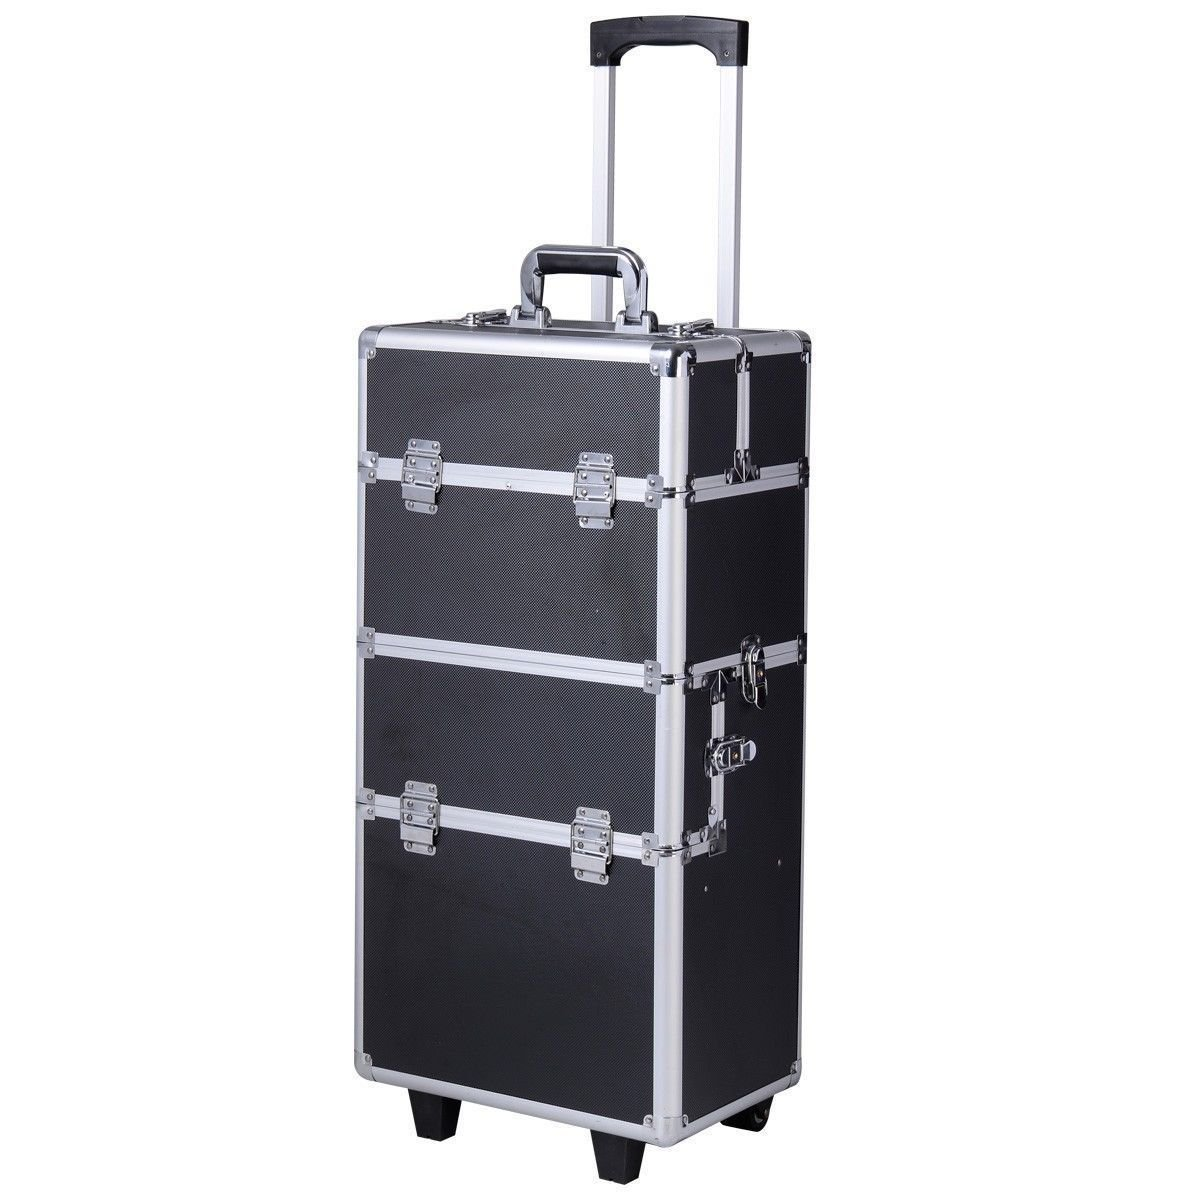 3 in 1 Pro Aluminum Rolling Makeup Case Salon Cosmetic Organizer Trolley-Black Diamond By Allgoodsdelight365